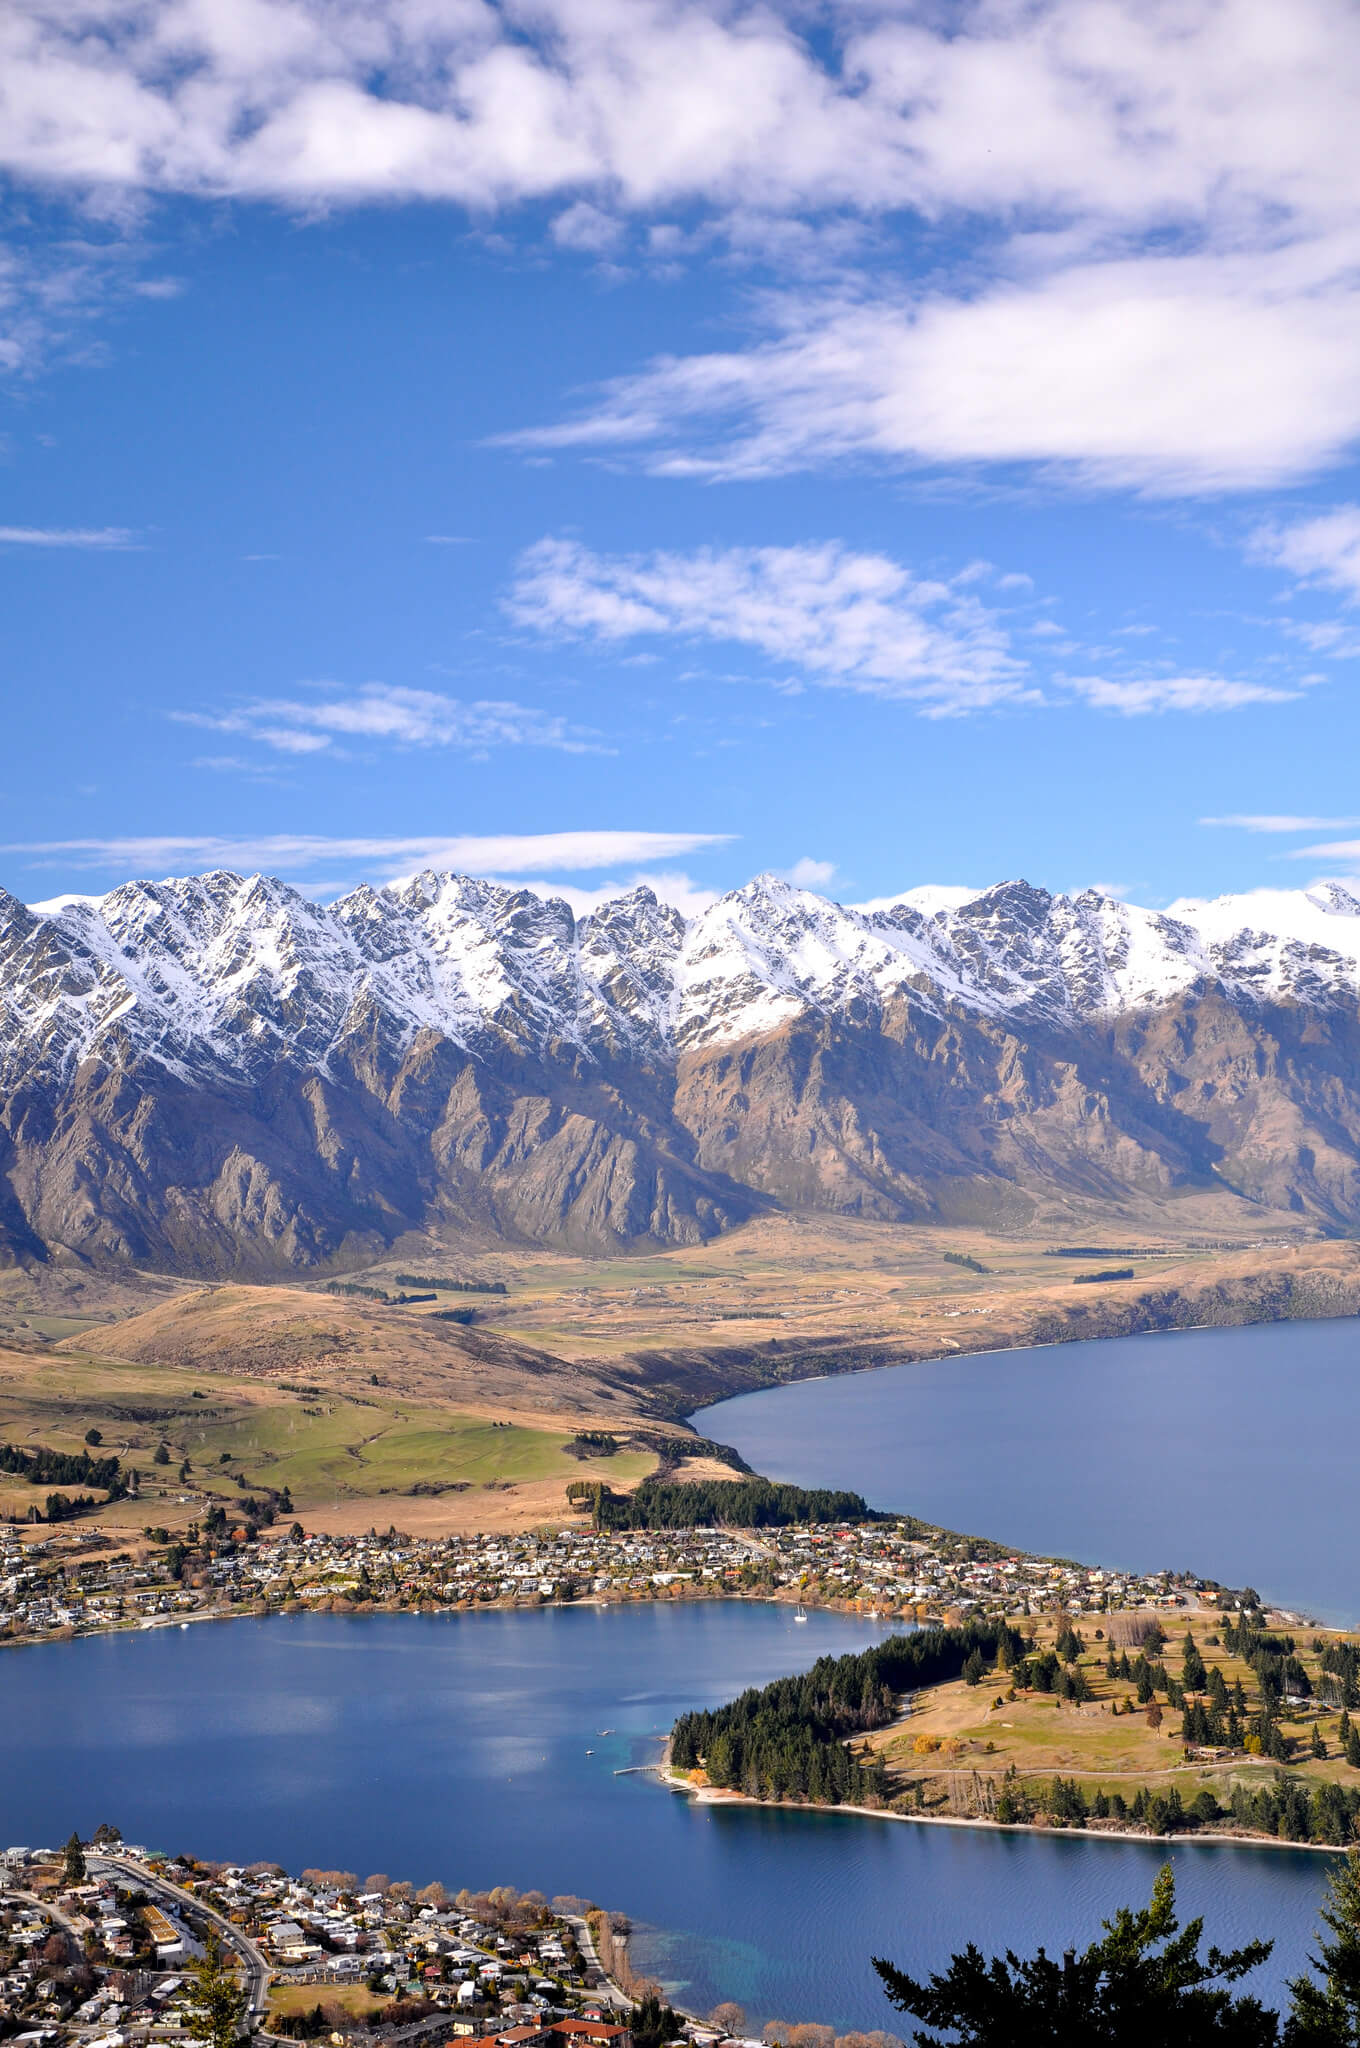 Amazing view of Queenstown, New Zealand